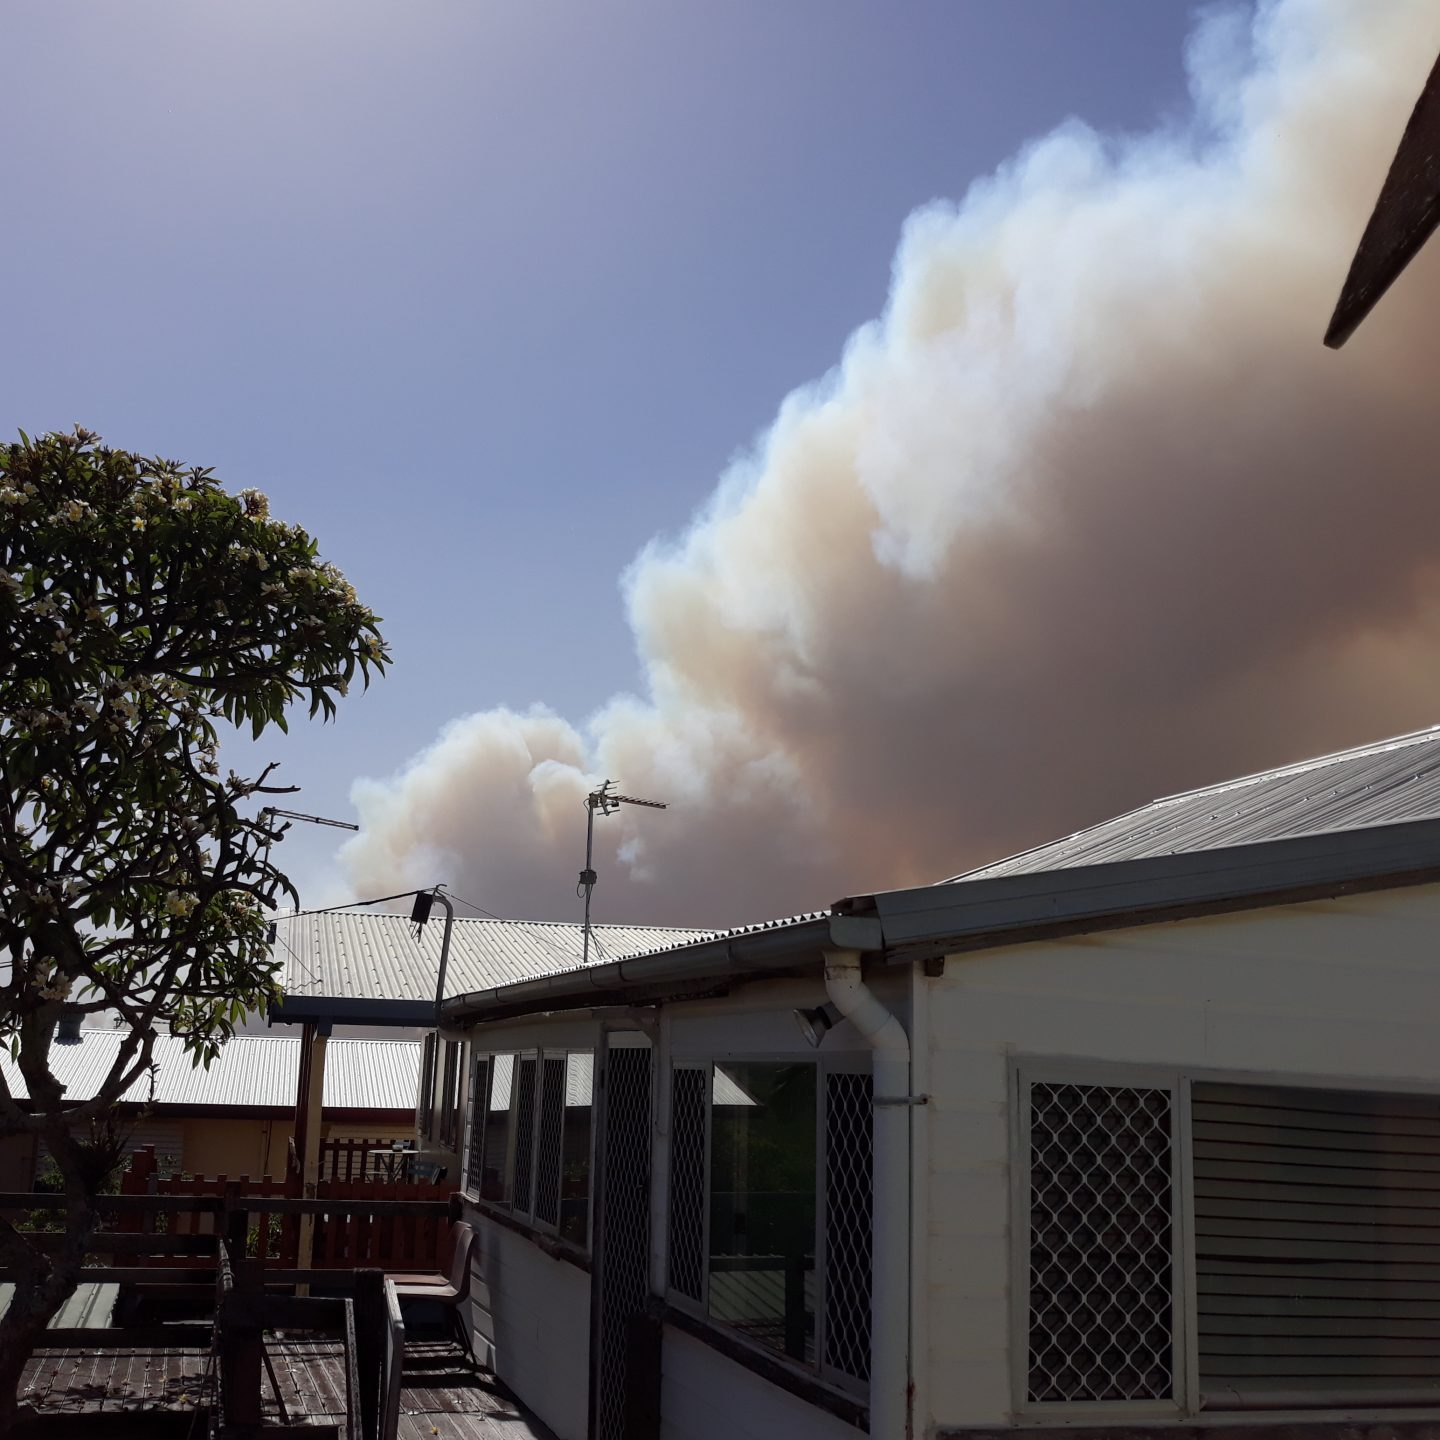 A house with a large plume of smoke emerging from behind it.